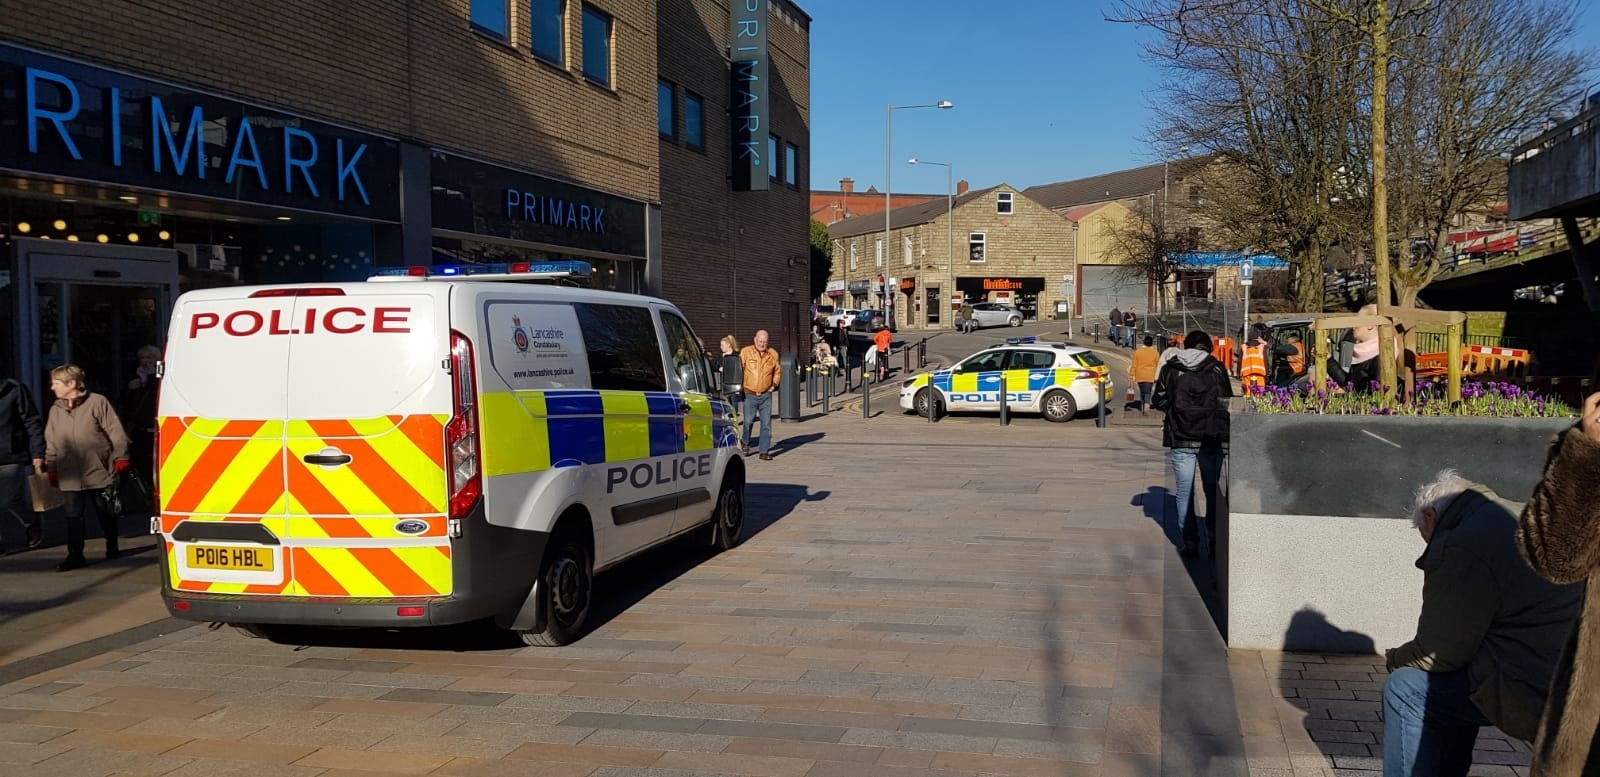 A police van and a car outside Primark in Burnley